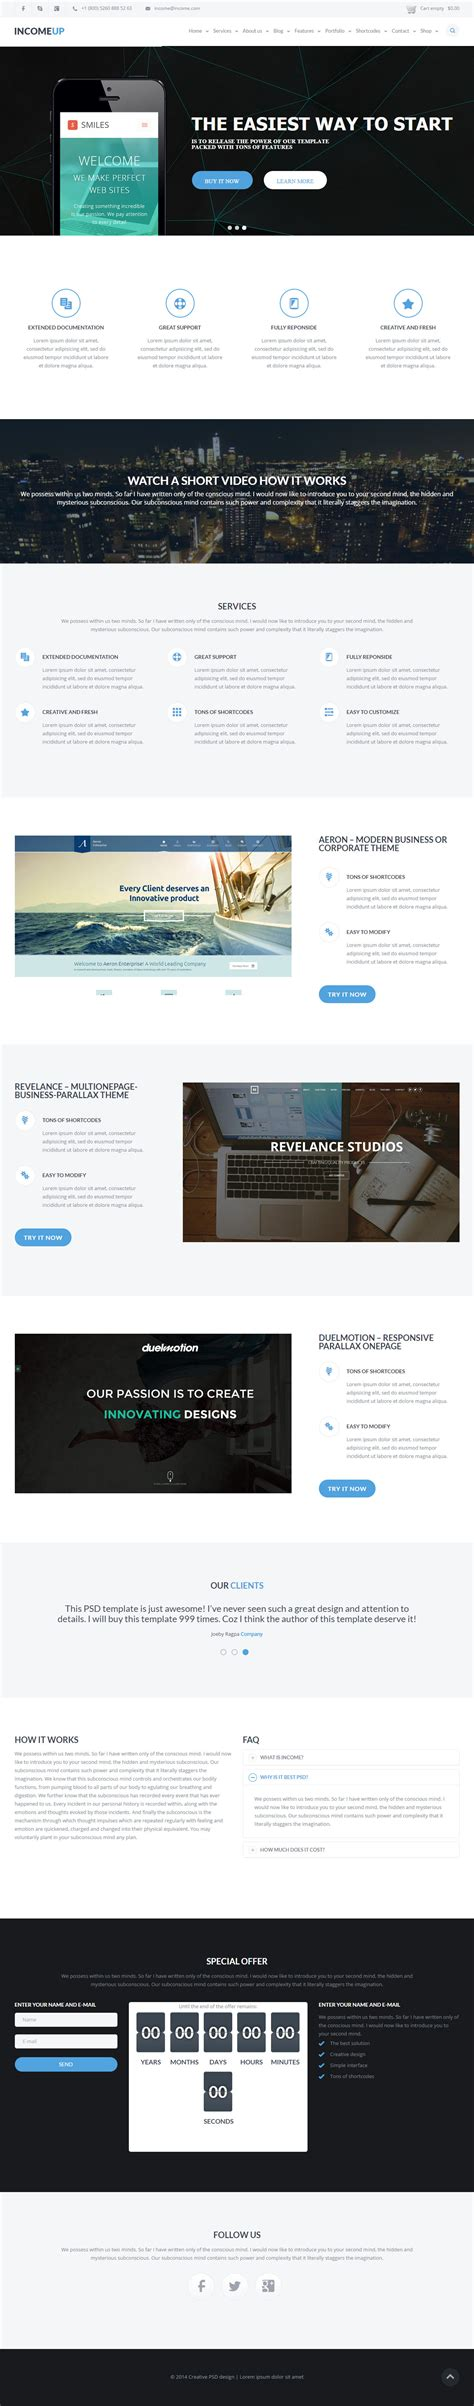 drupal theme landing page 10 best drupal landing page themes 2017 responsive miracle